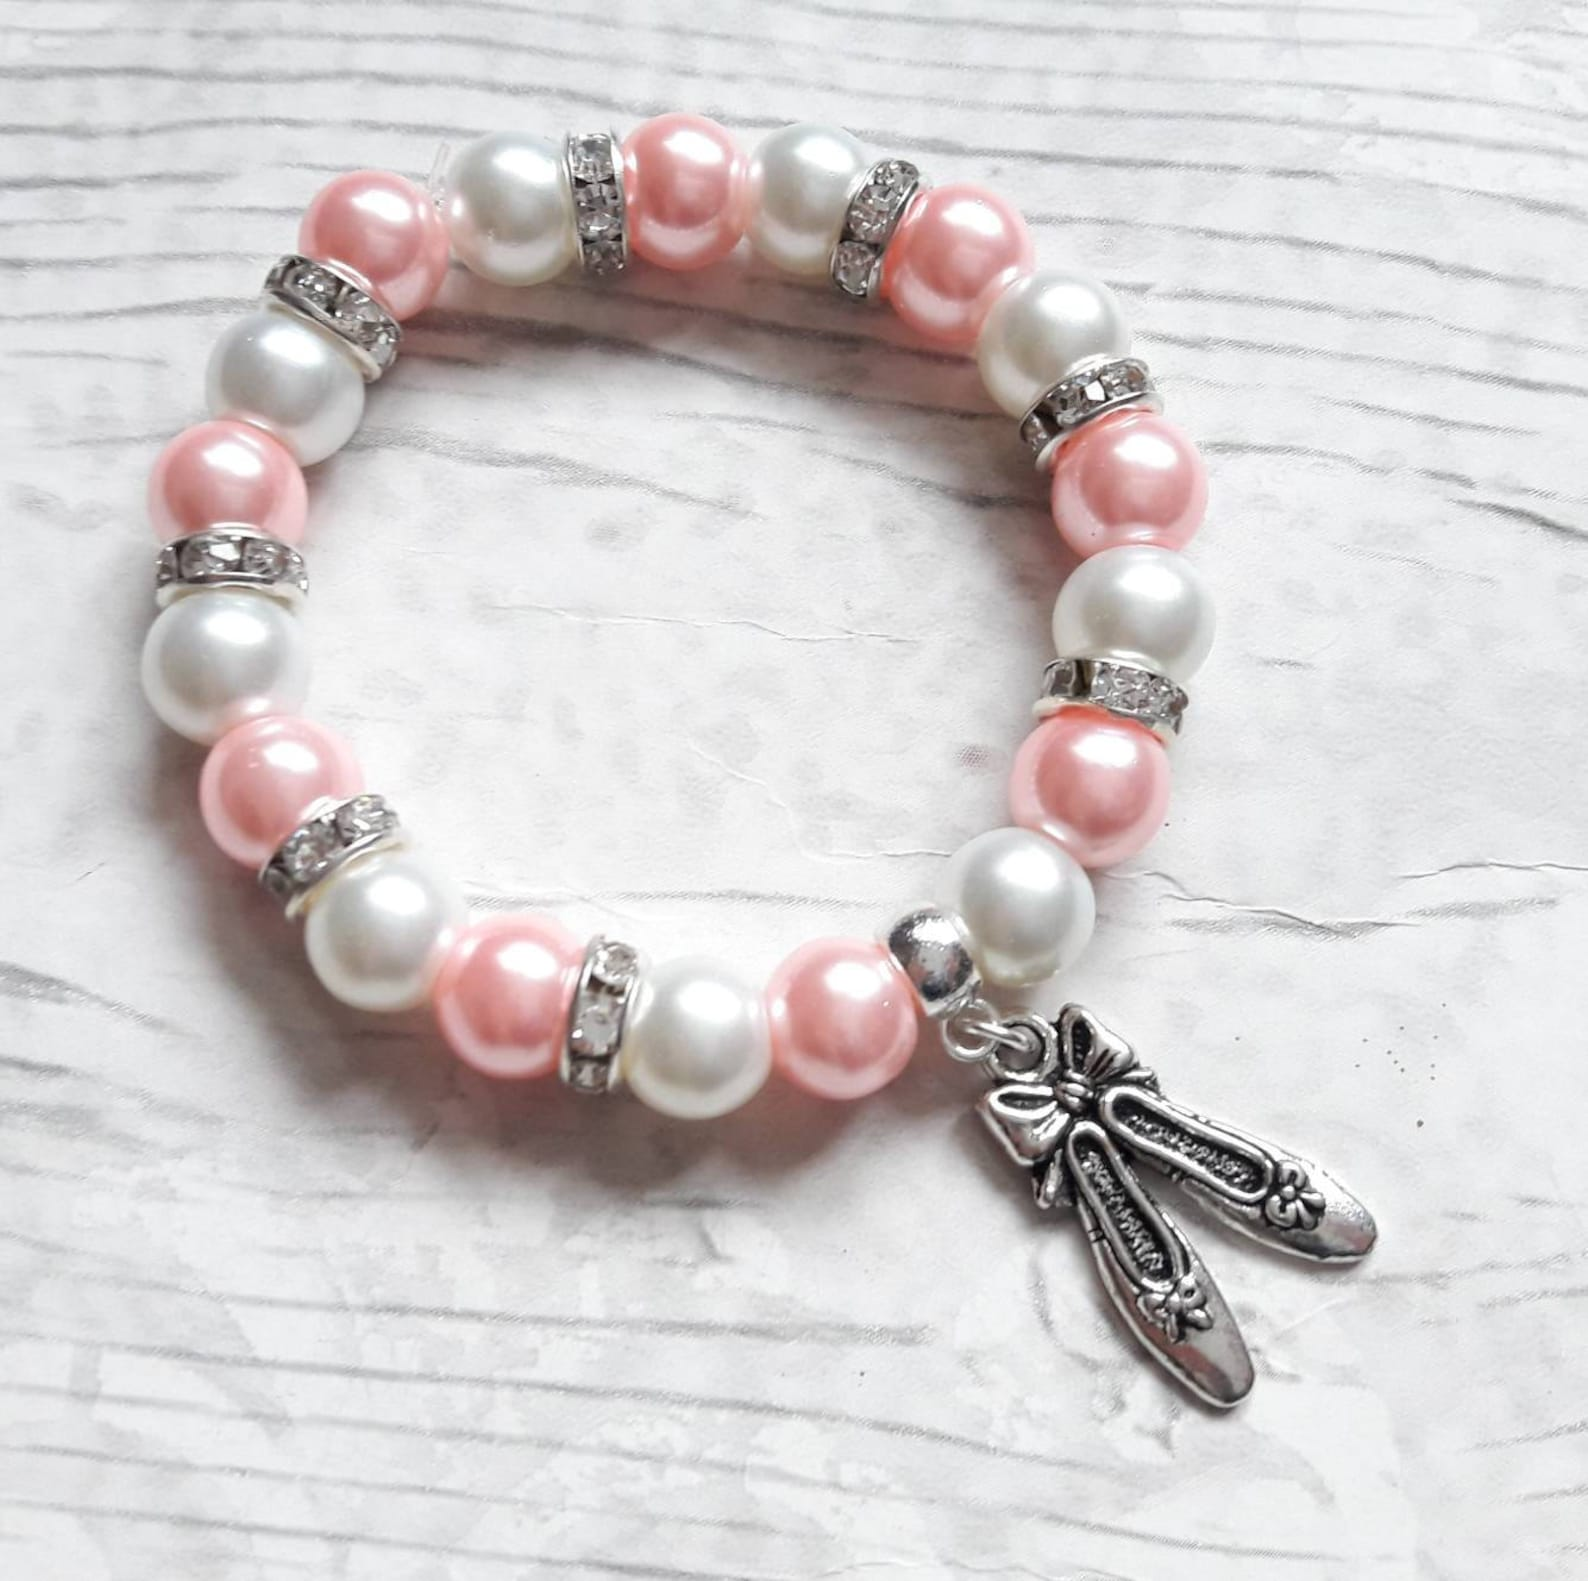 ballet shoe bracelet, ballerina jewellery, dance jewelry, ballet present, gift for girls, friendship bracelet, charm beaded brac